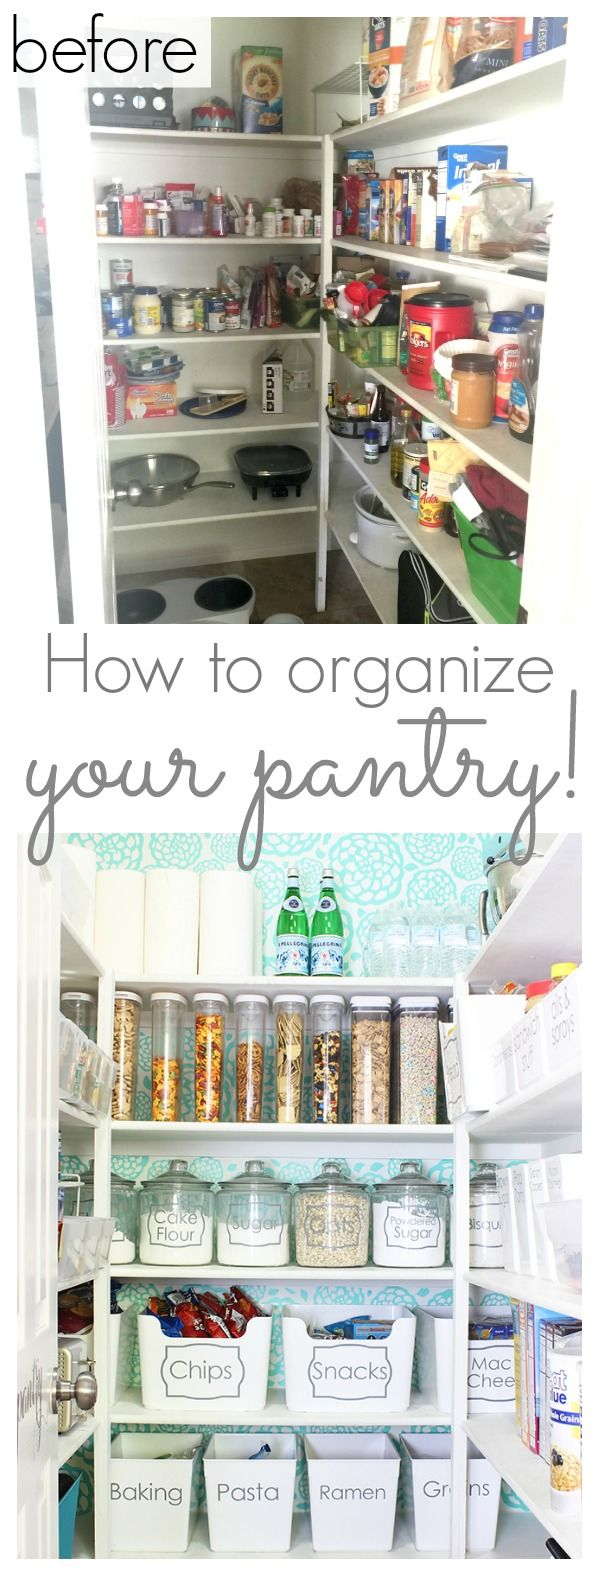 199 best Organization images by Amber Lambrecht on Pinterest ...